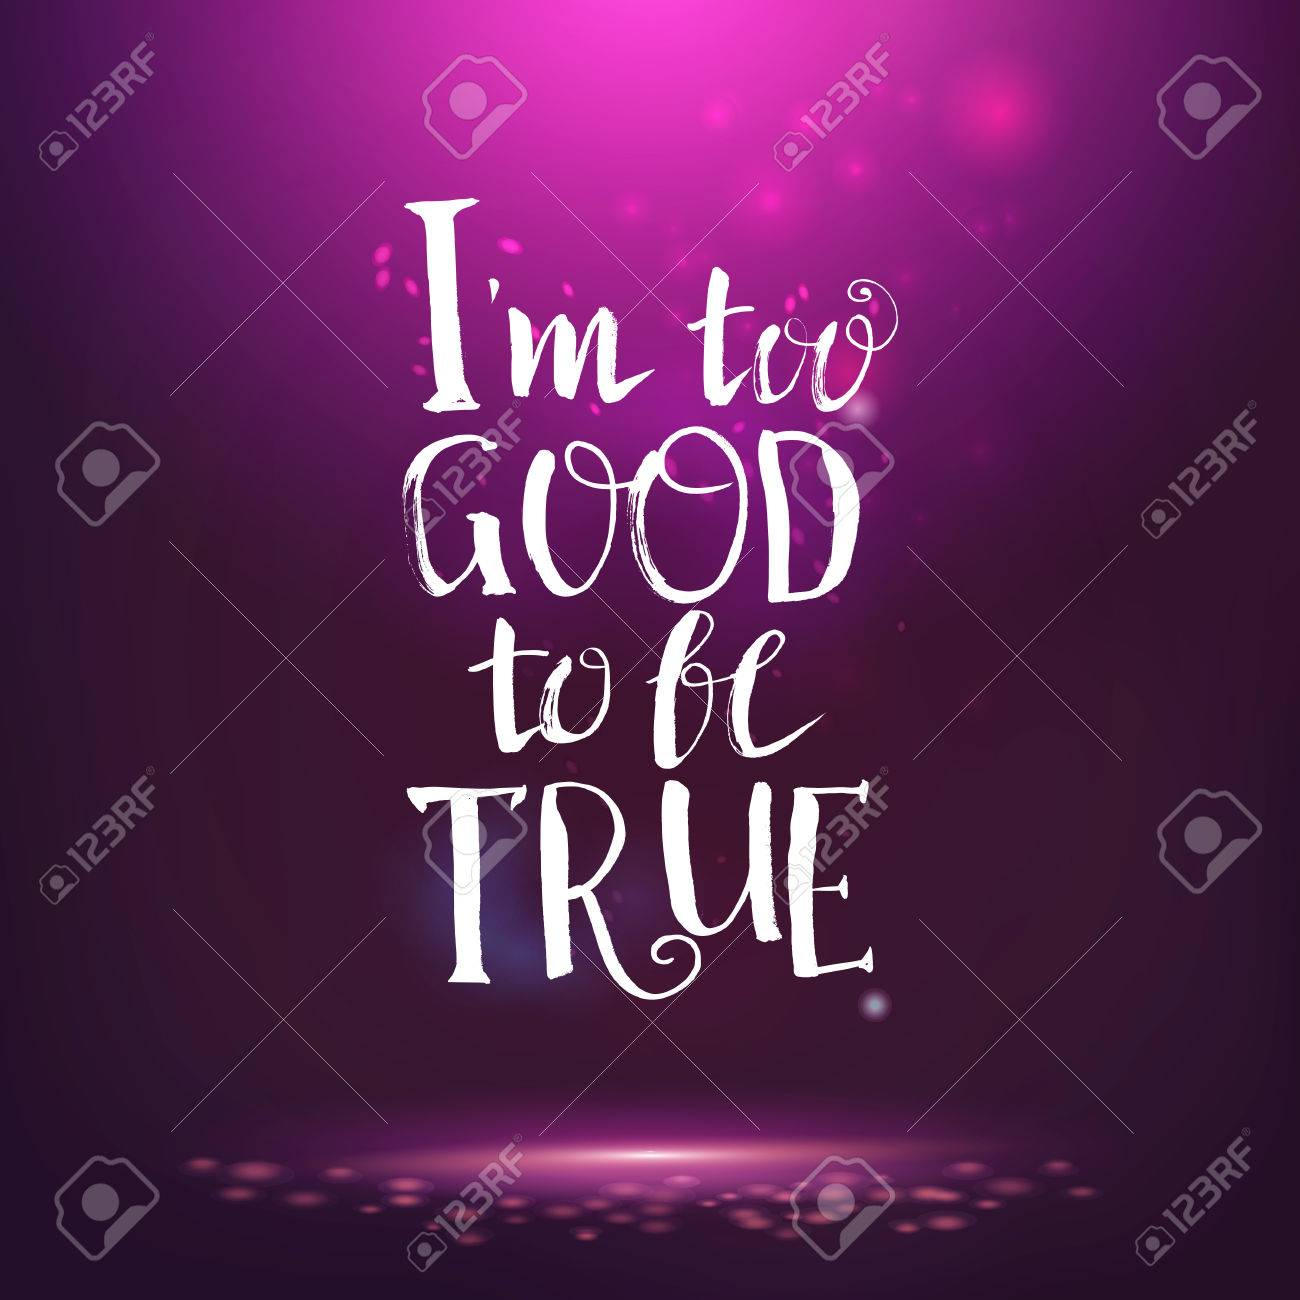 I Too Good To Be True Quote Lettering Card Abstract Night